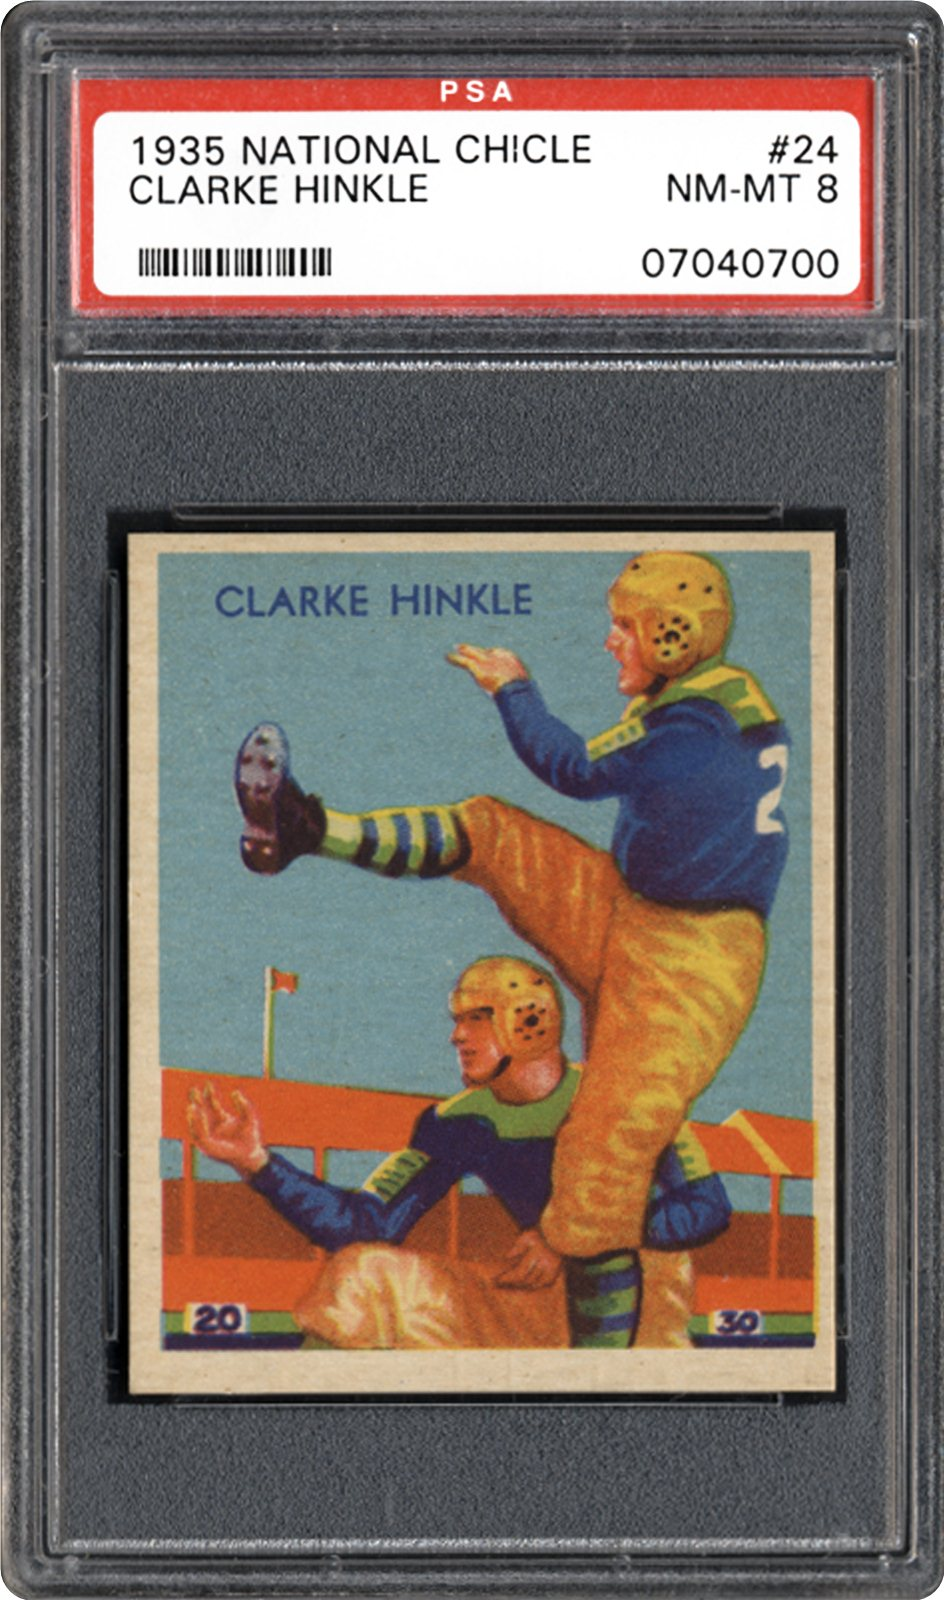 1935 National Chicle Clarke Hinkle | PSA CardFacts™